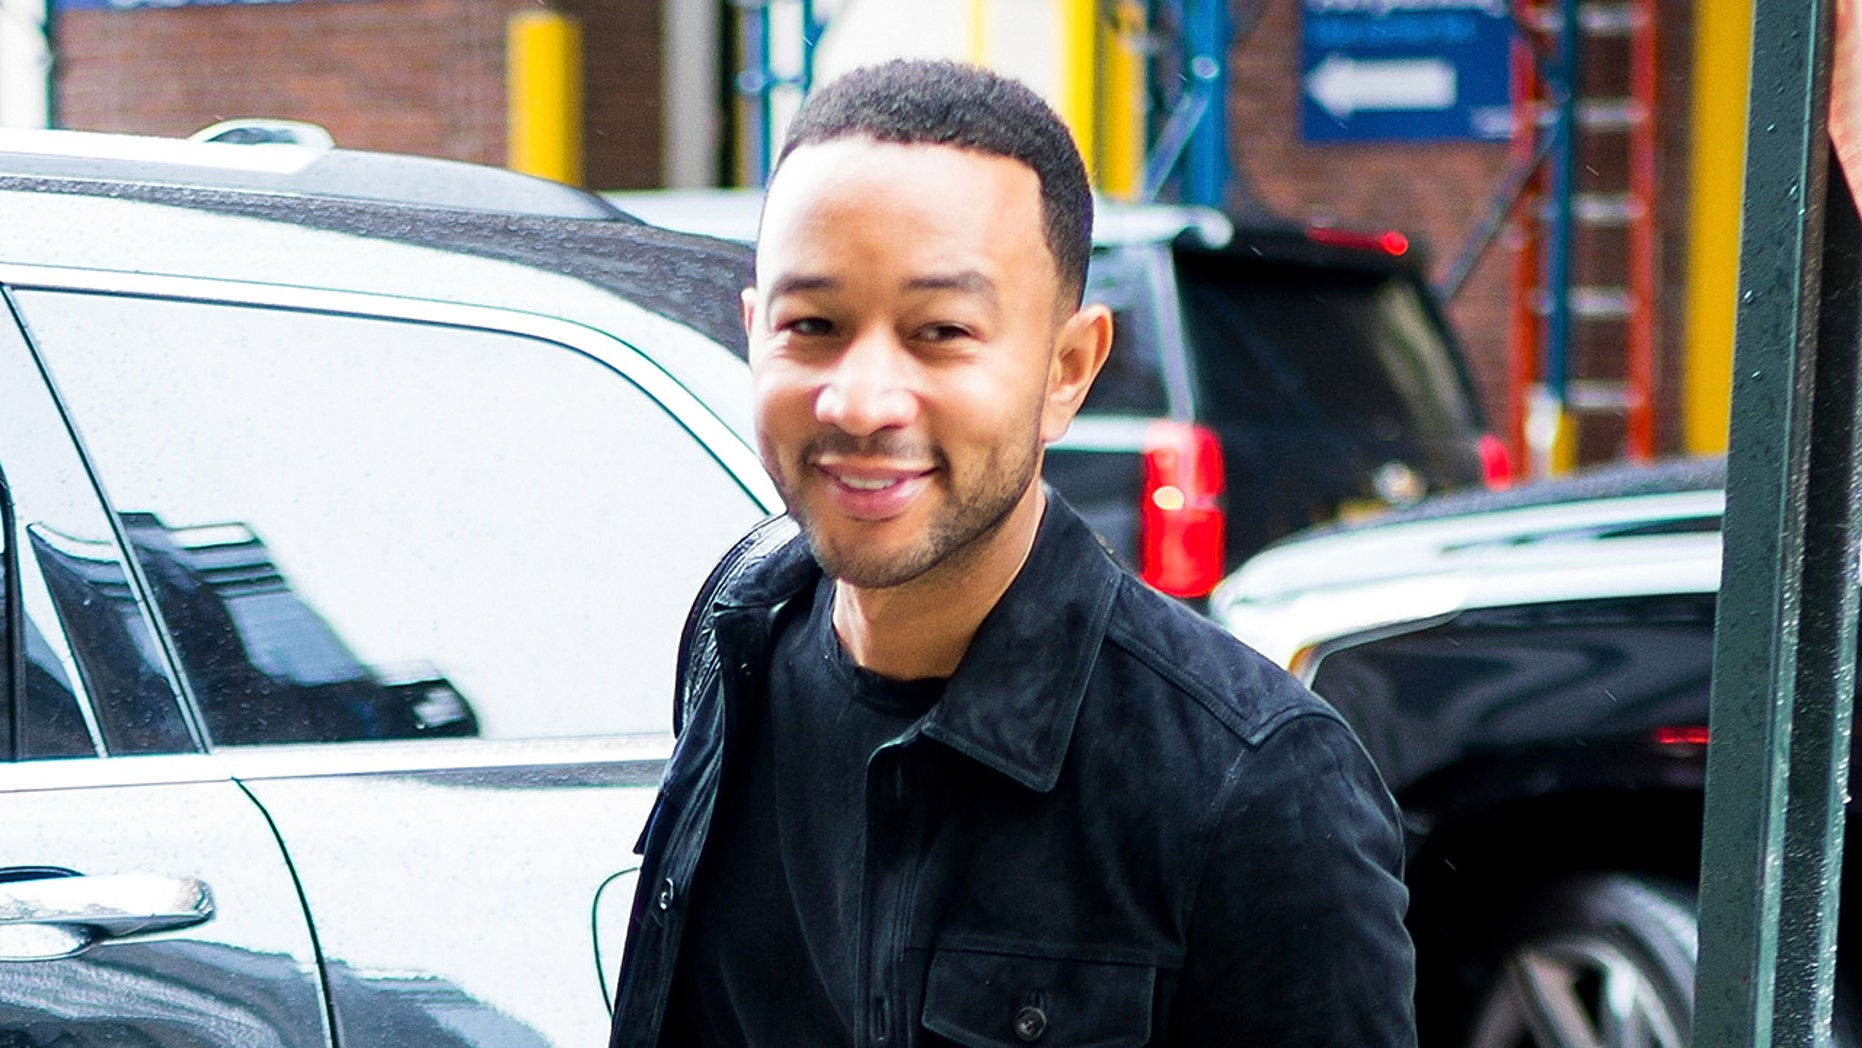 Singer-songwriter John Legend reportedly donated some money to a New Jersey fire department.